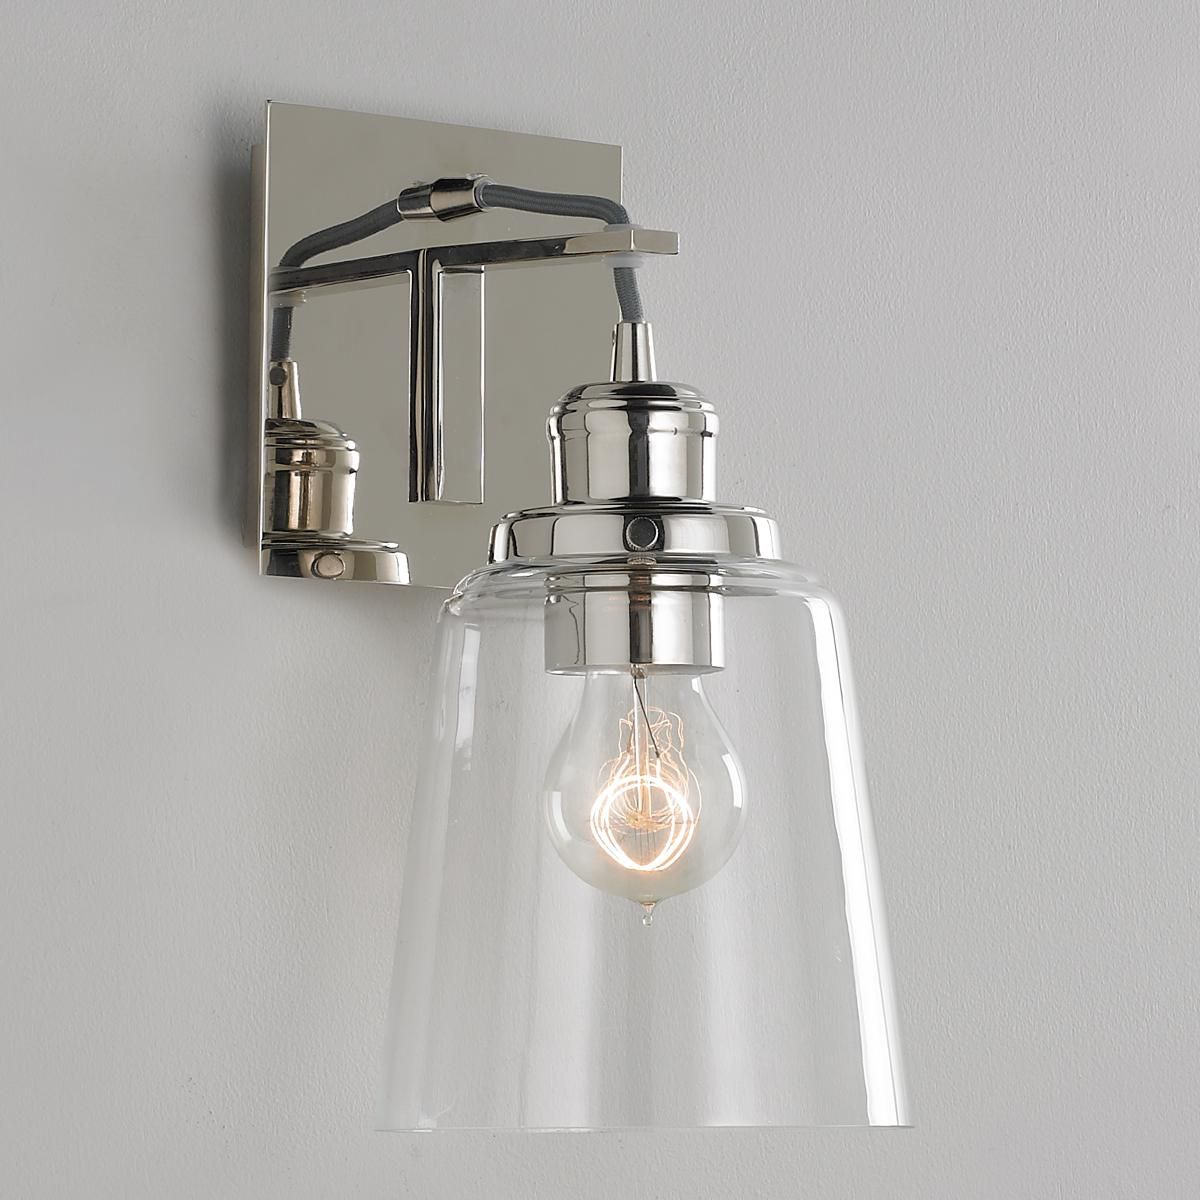 Vice Wall Sconce | Bathroom sconces, Wall sconces, Modern ... on Bathroom Sconce Lights Brushed Bronze id=73212